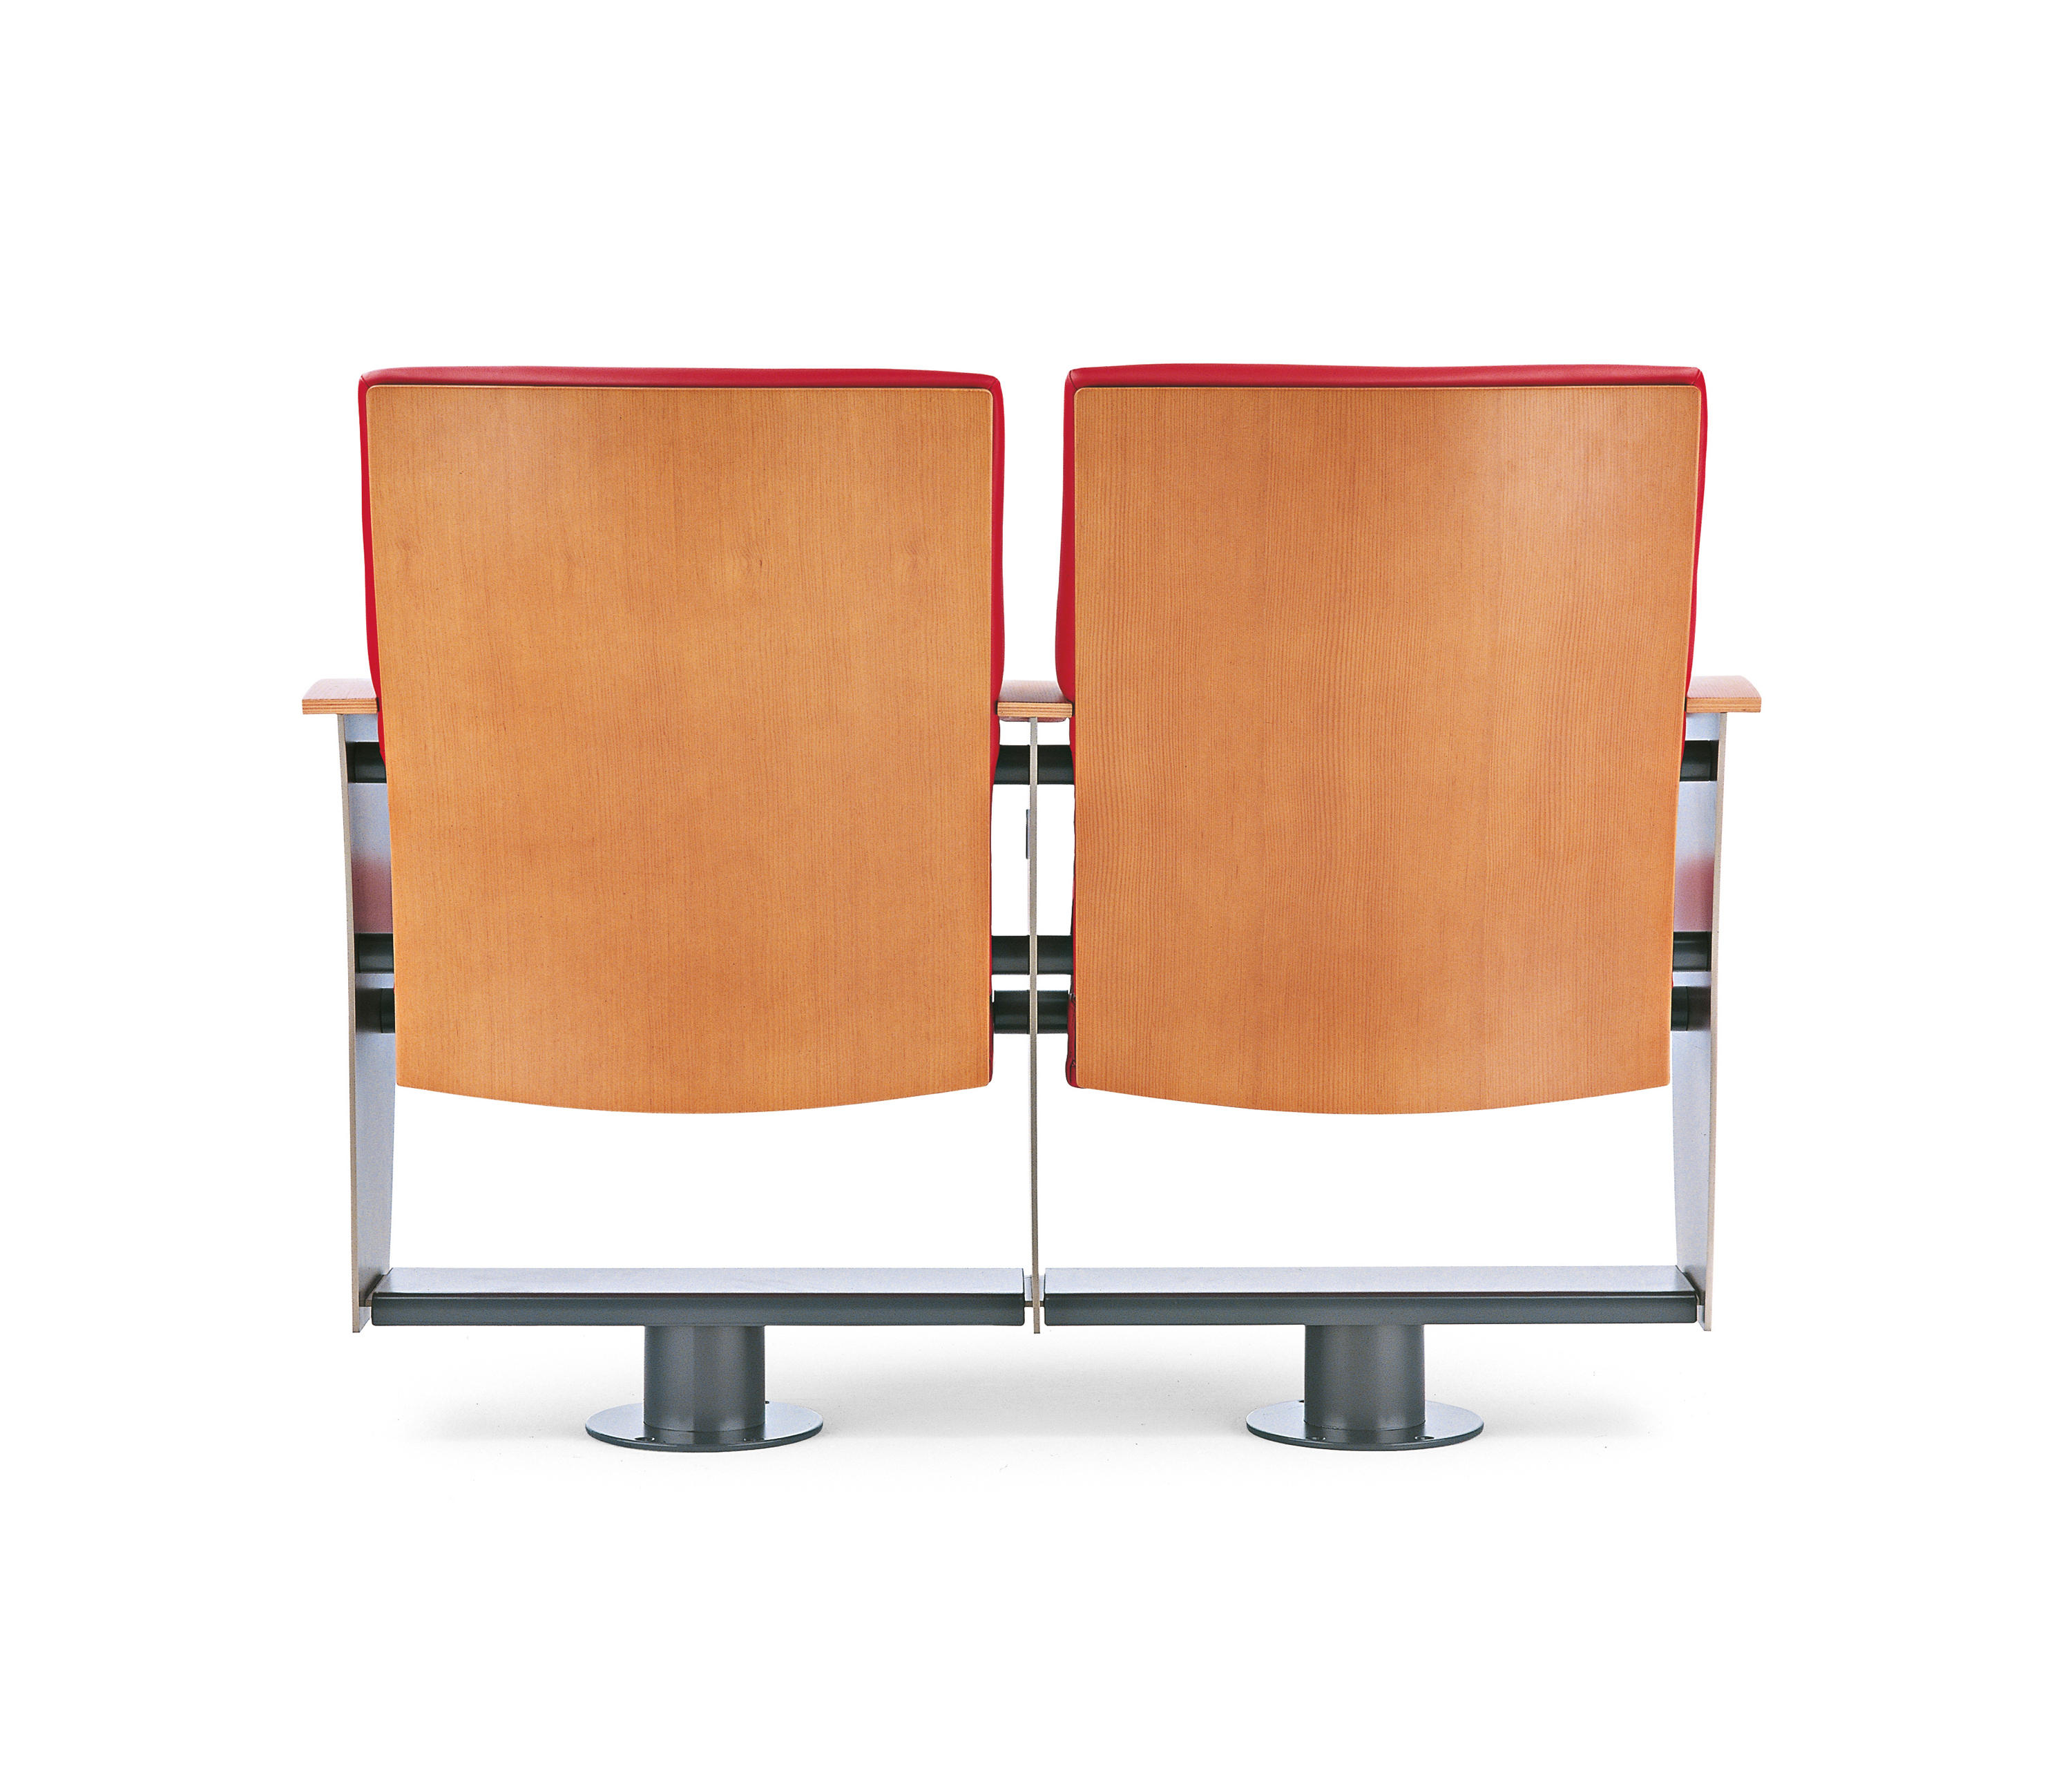 ... Frank O. Gehry Chair By Poltrona Frau Group Contract Division |  Auditorium Seating ...